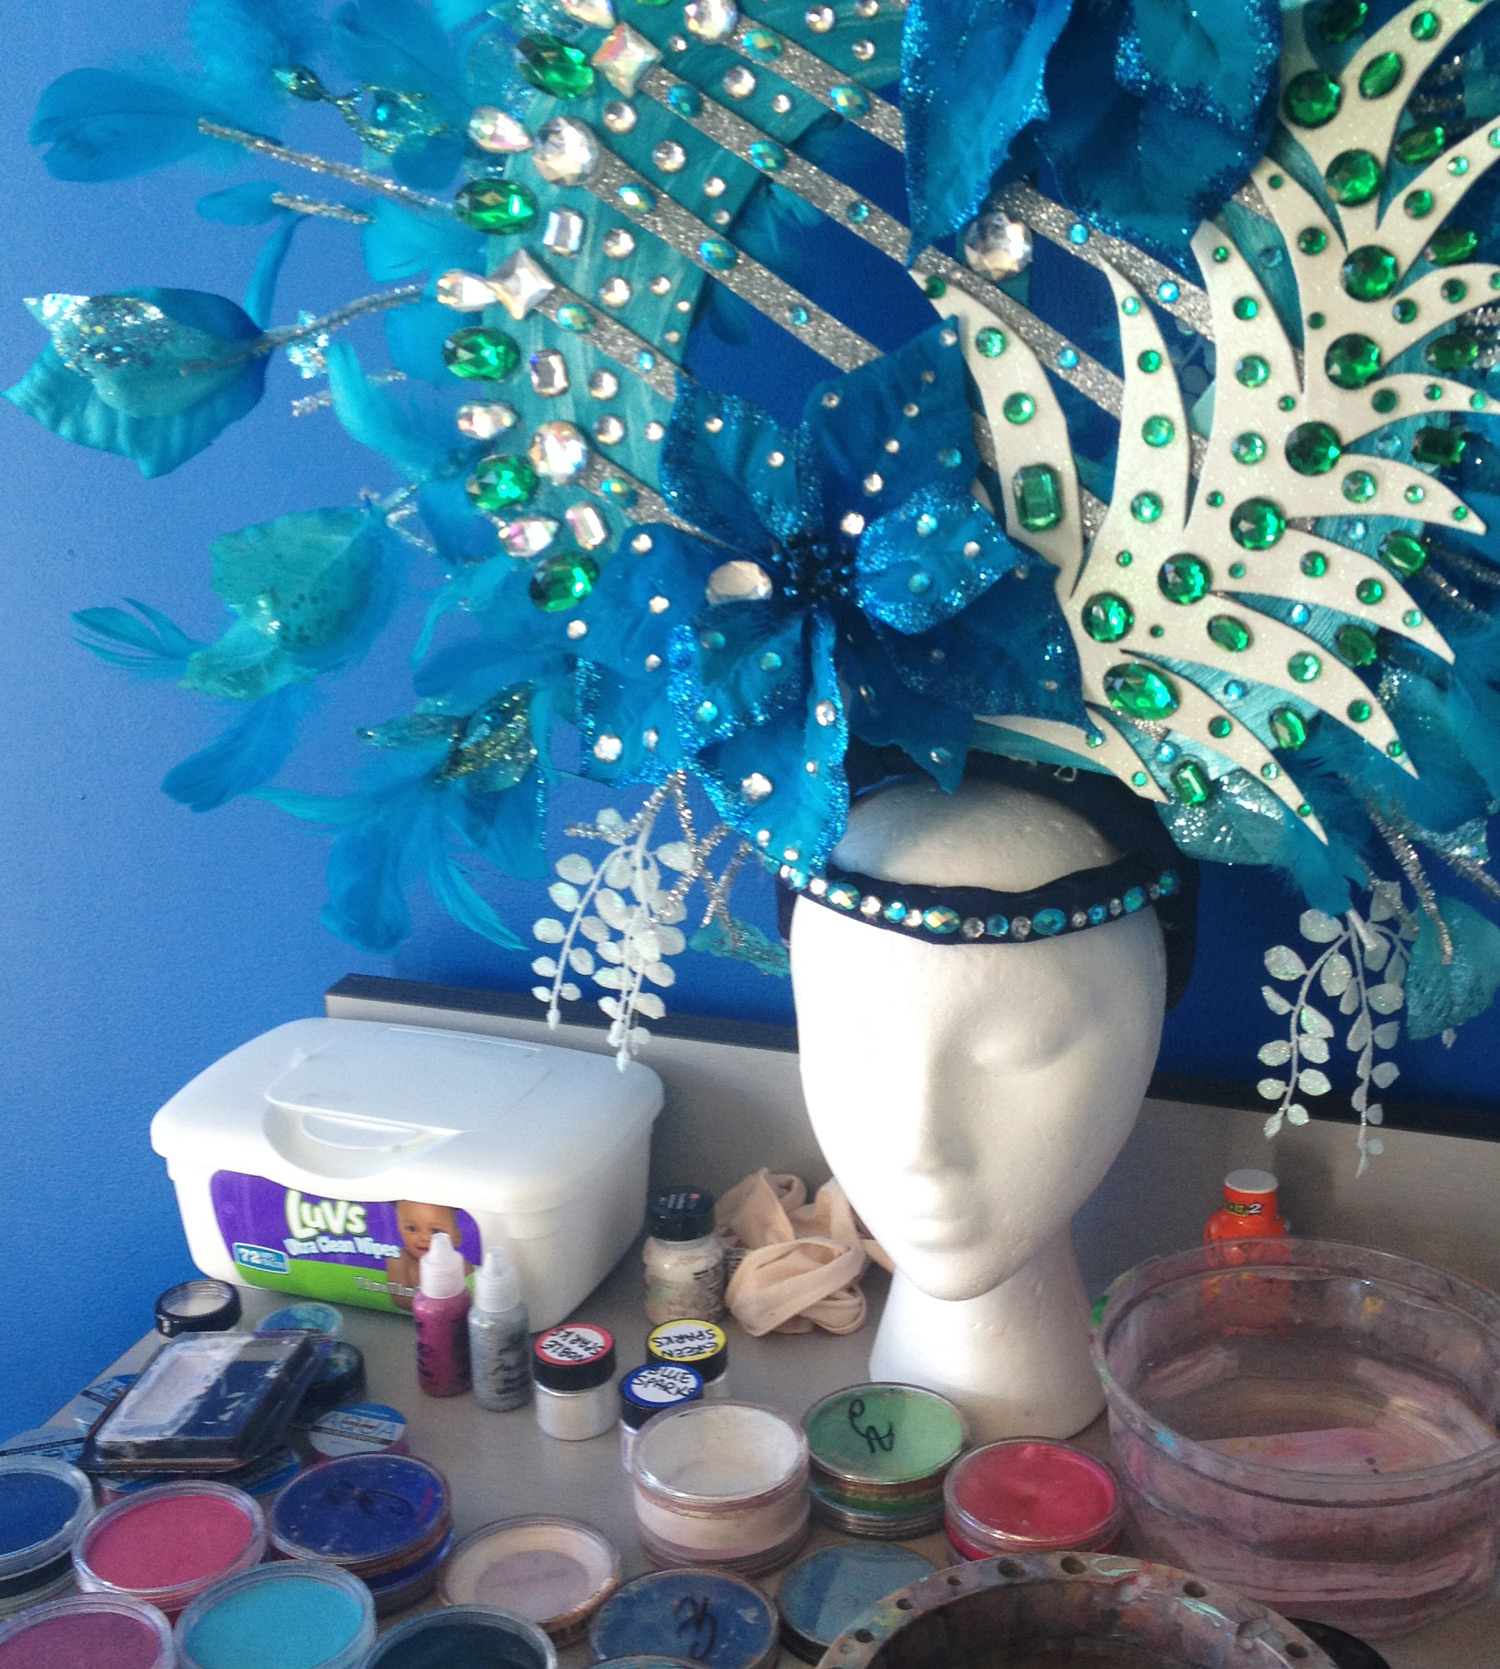 headdress-and-paints-before-brushes-body-and-beats-crop.jpg